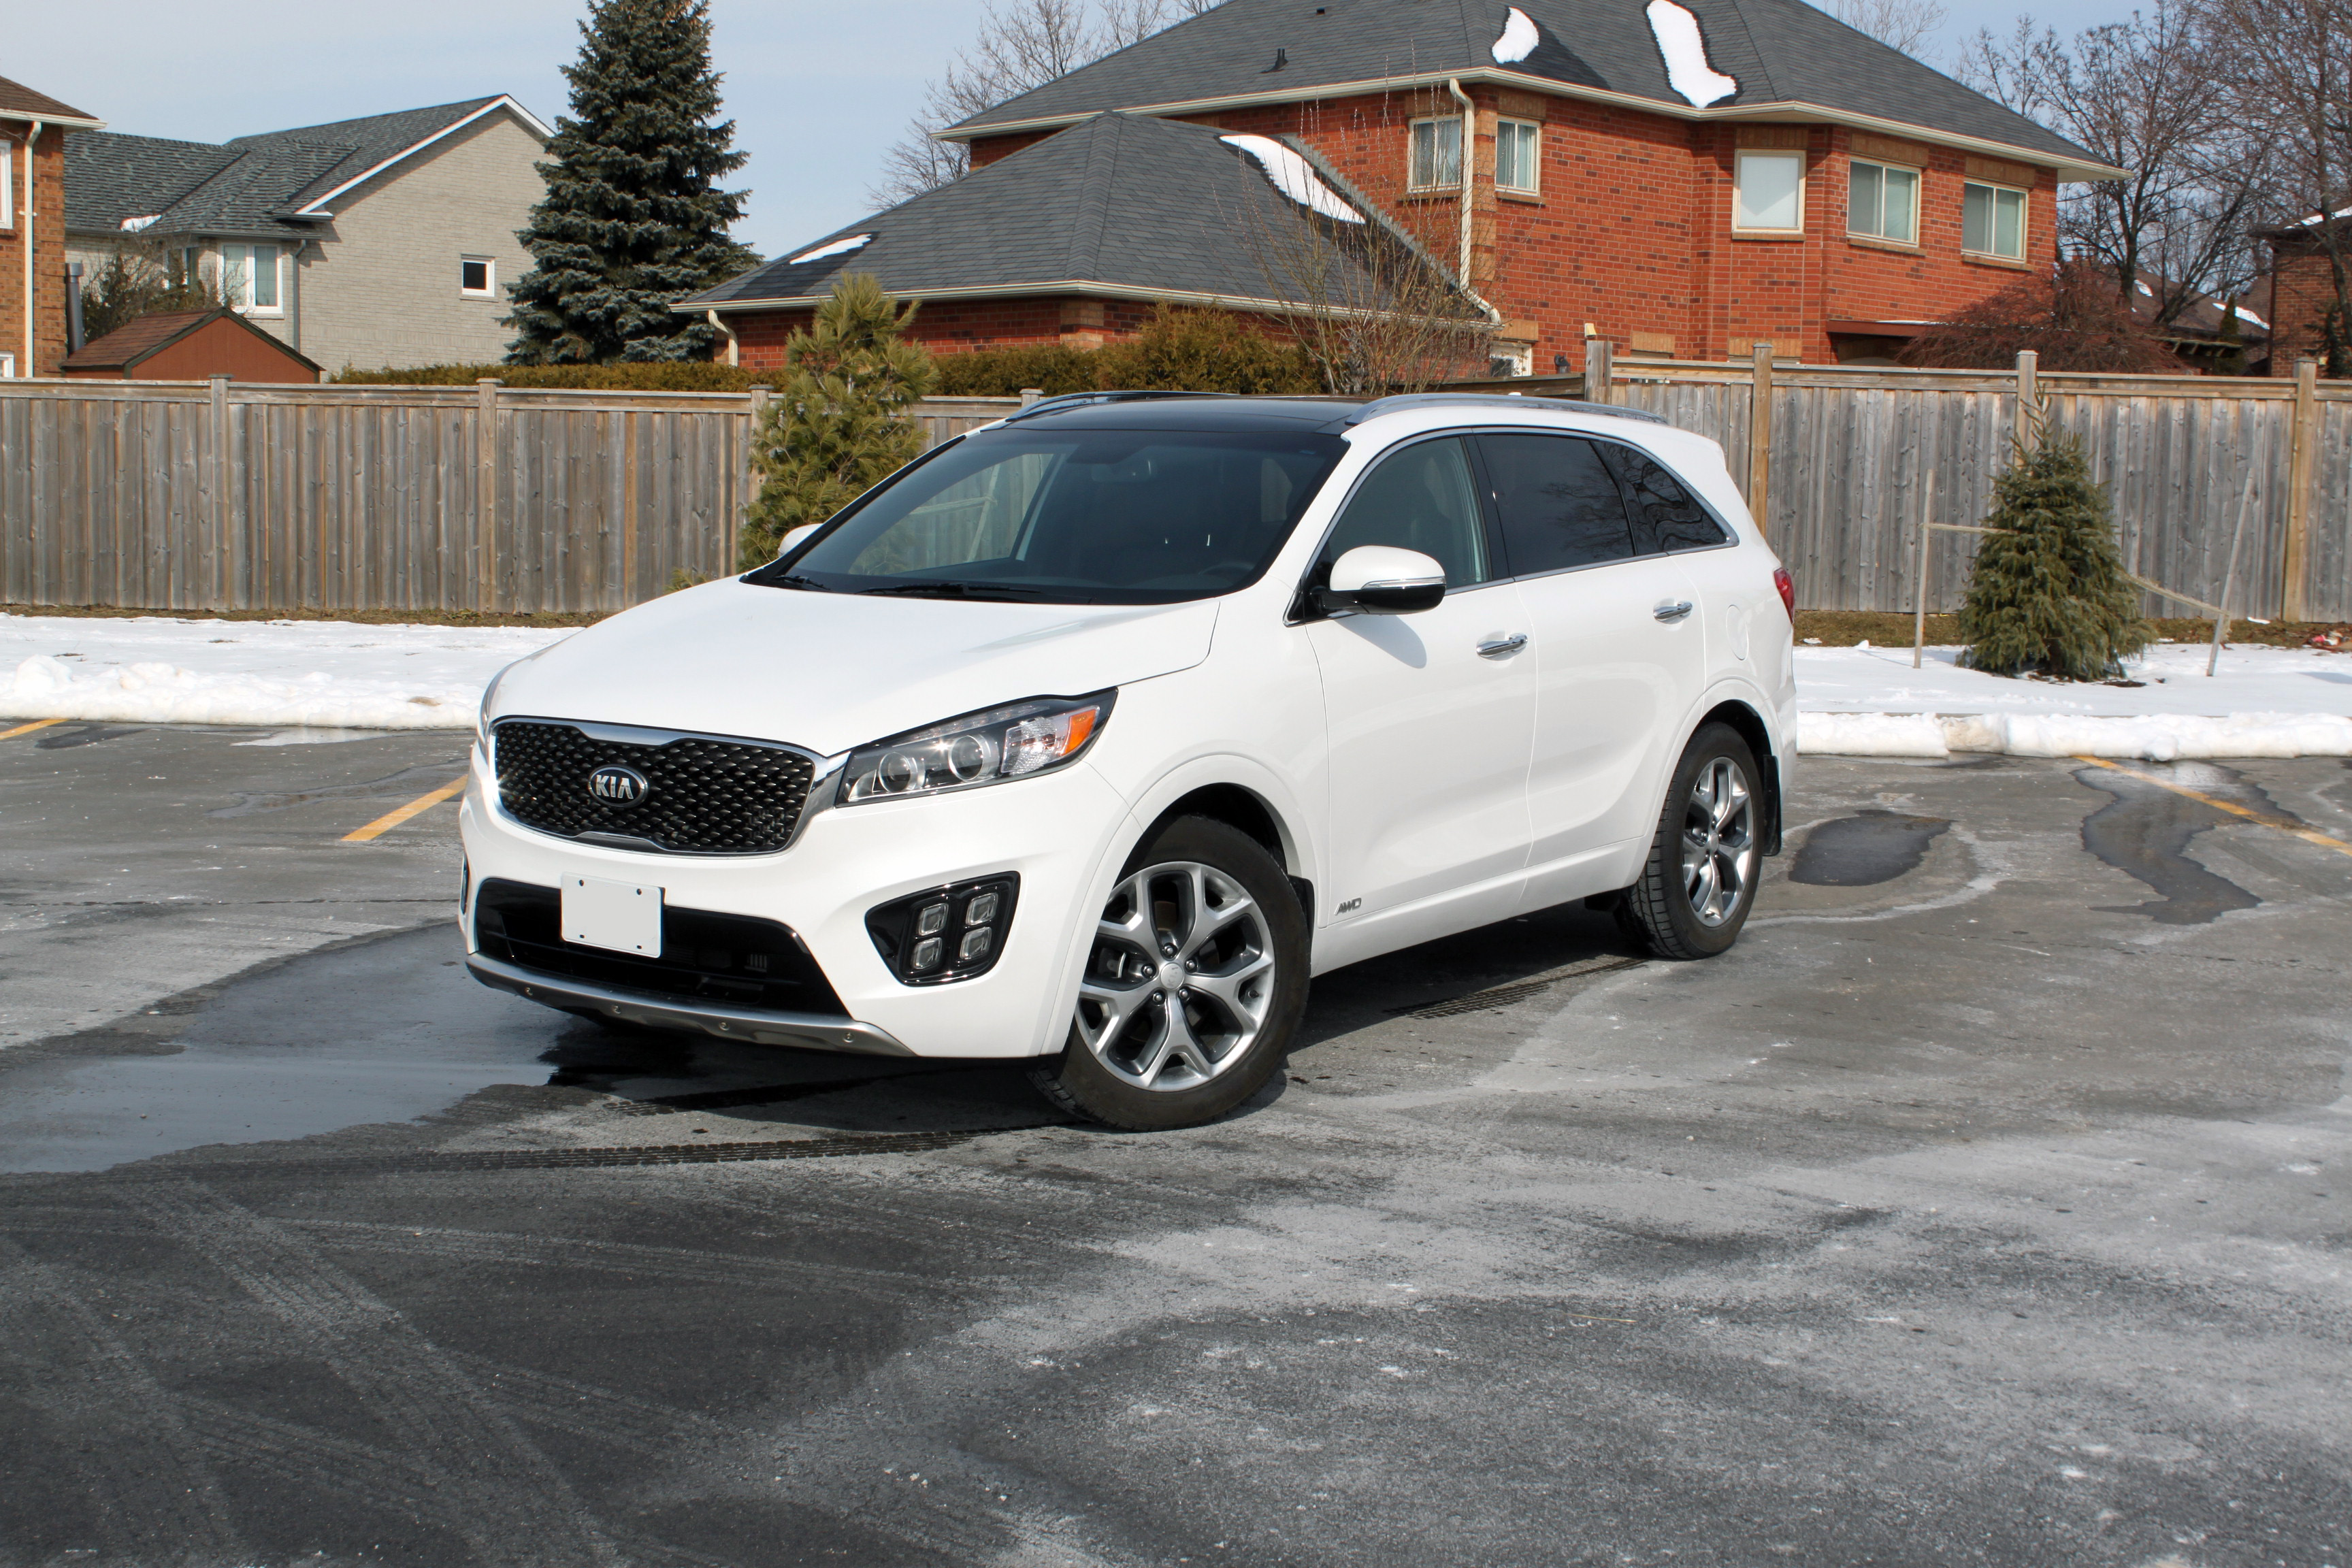 Kia Sorento Sx Turbo on 2019 Kia Sorento Interior